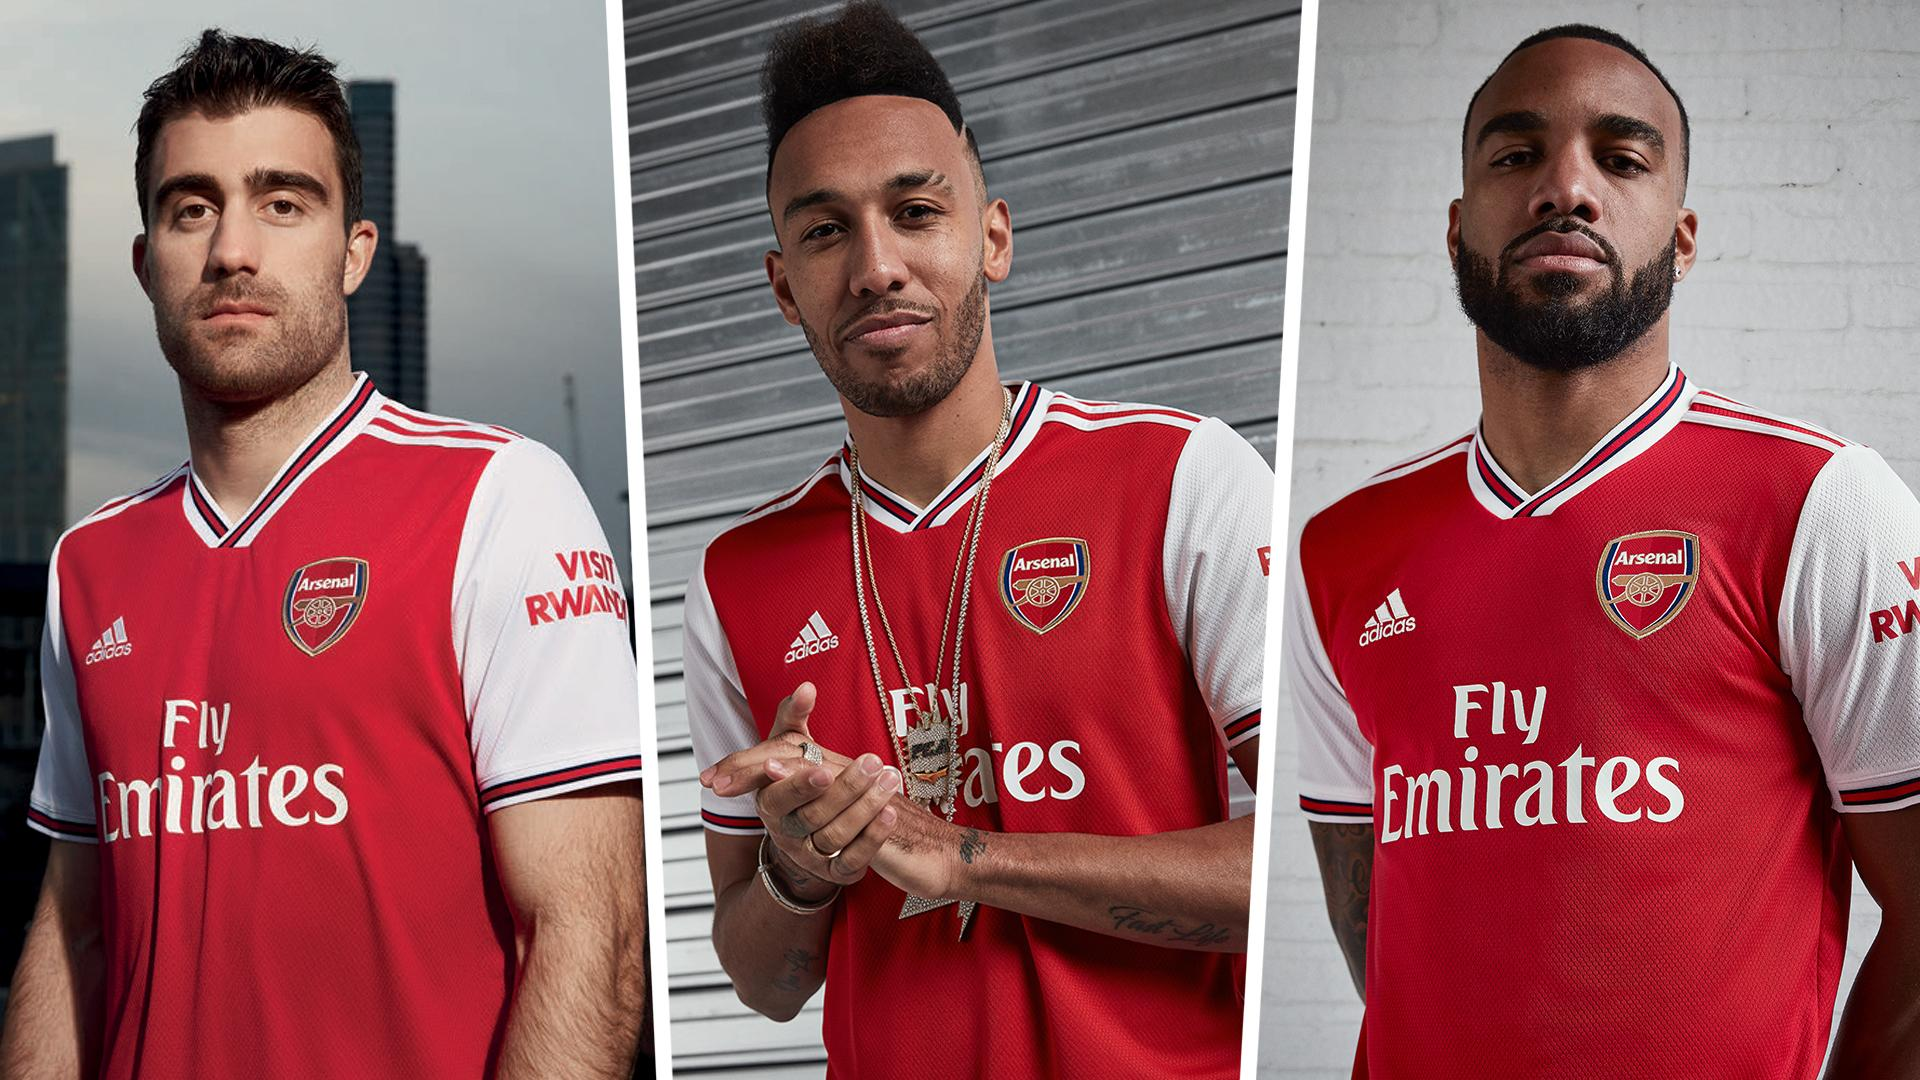 Kit Dls Arsenal 2019 Fantasy: Adidas And Arsenal Form New Partnership With 2019/20 Home Kit